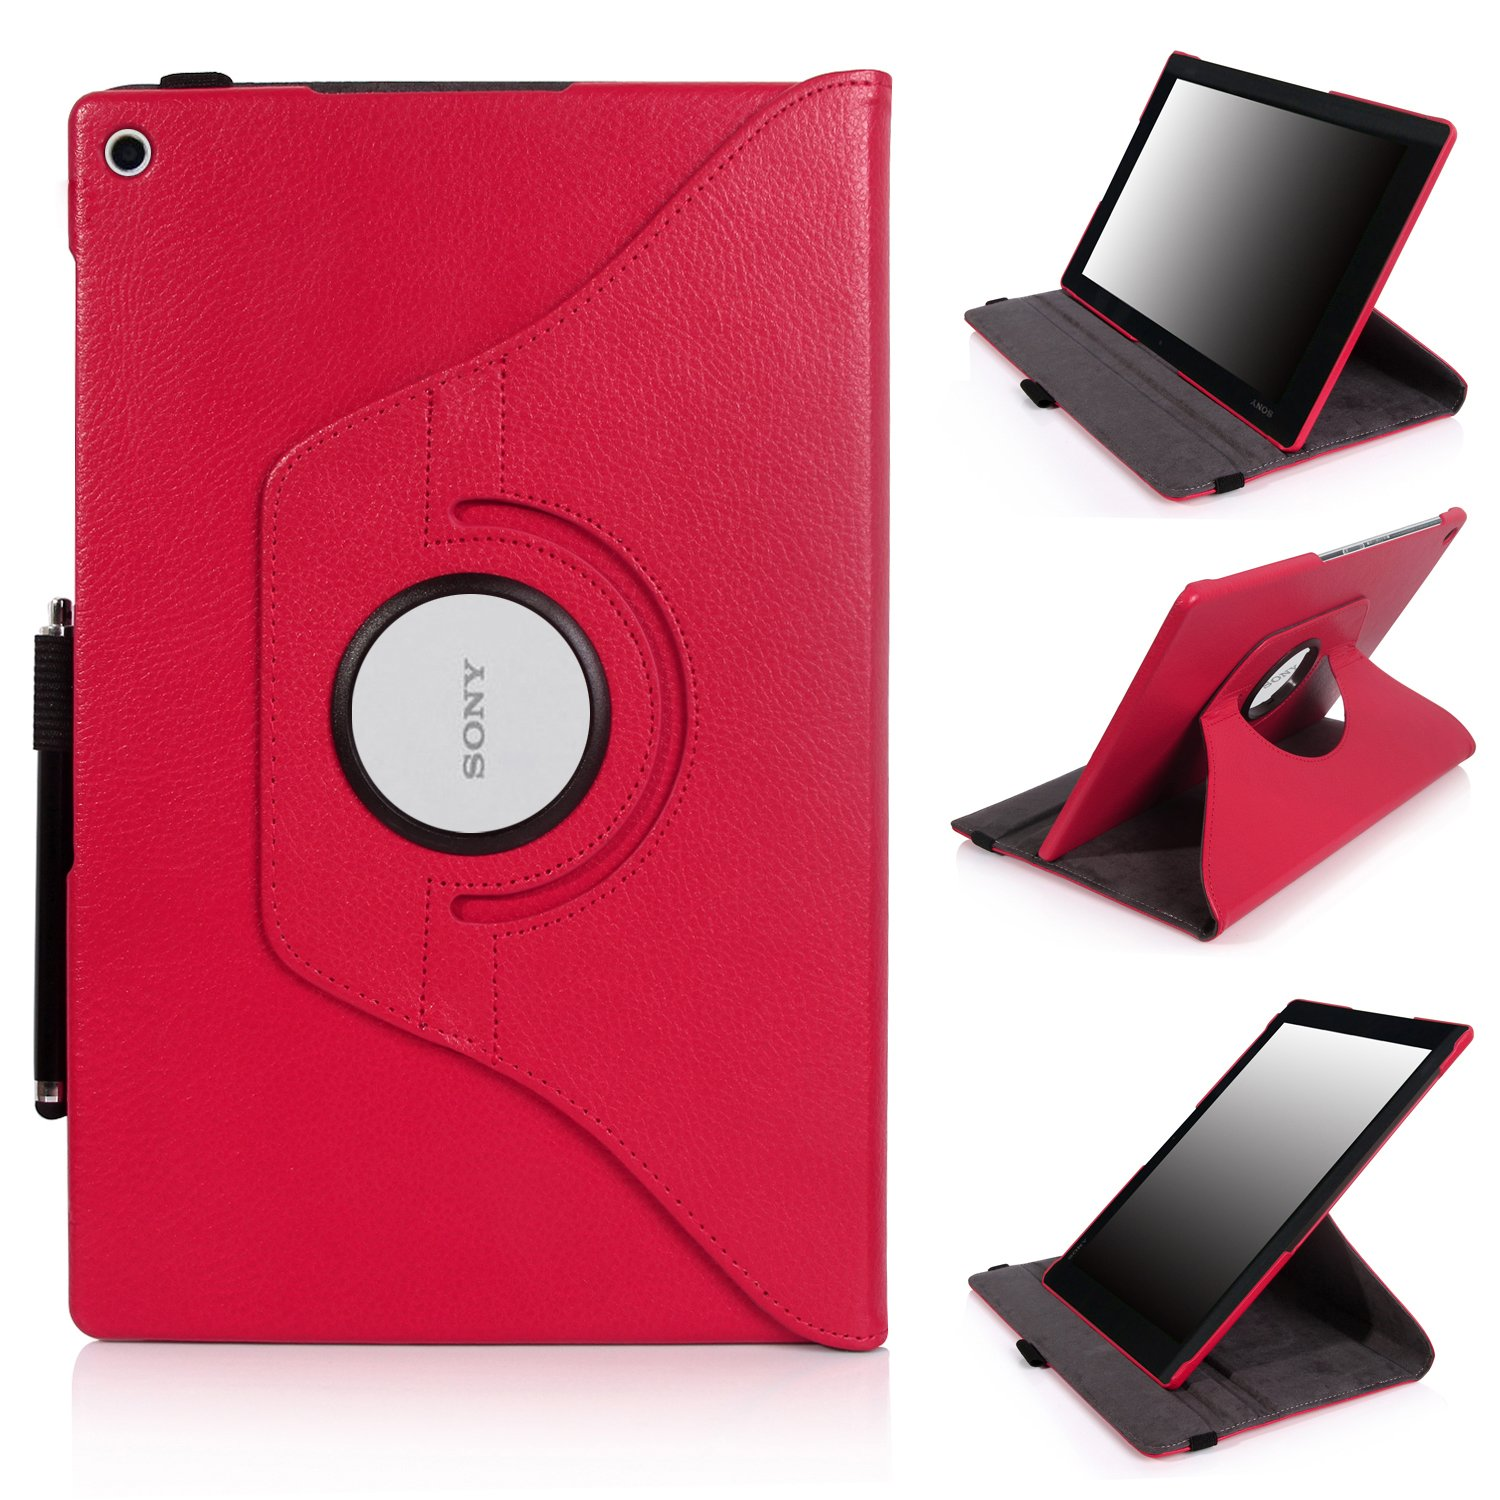 E LV 360 rotating Lightweight Case Cover stand for Sony Xperia Z2 (2014) 10.1 inch (Android Tablet) with 1 Stylus (Hot Pink, Sony Xperia Tablet Z2)